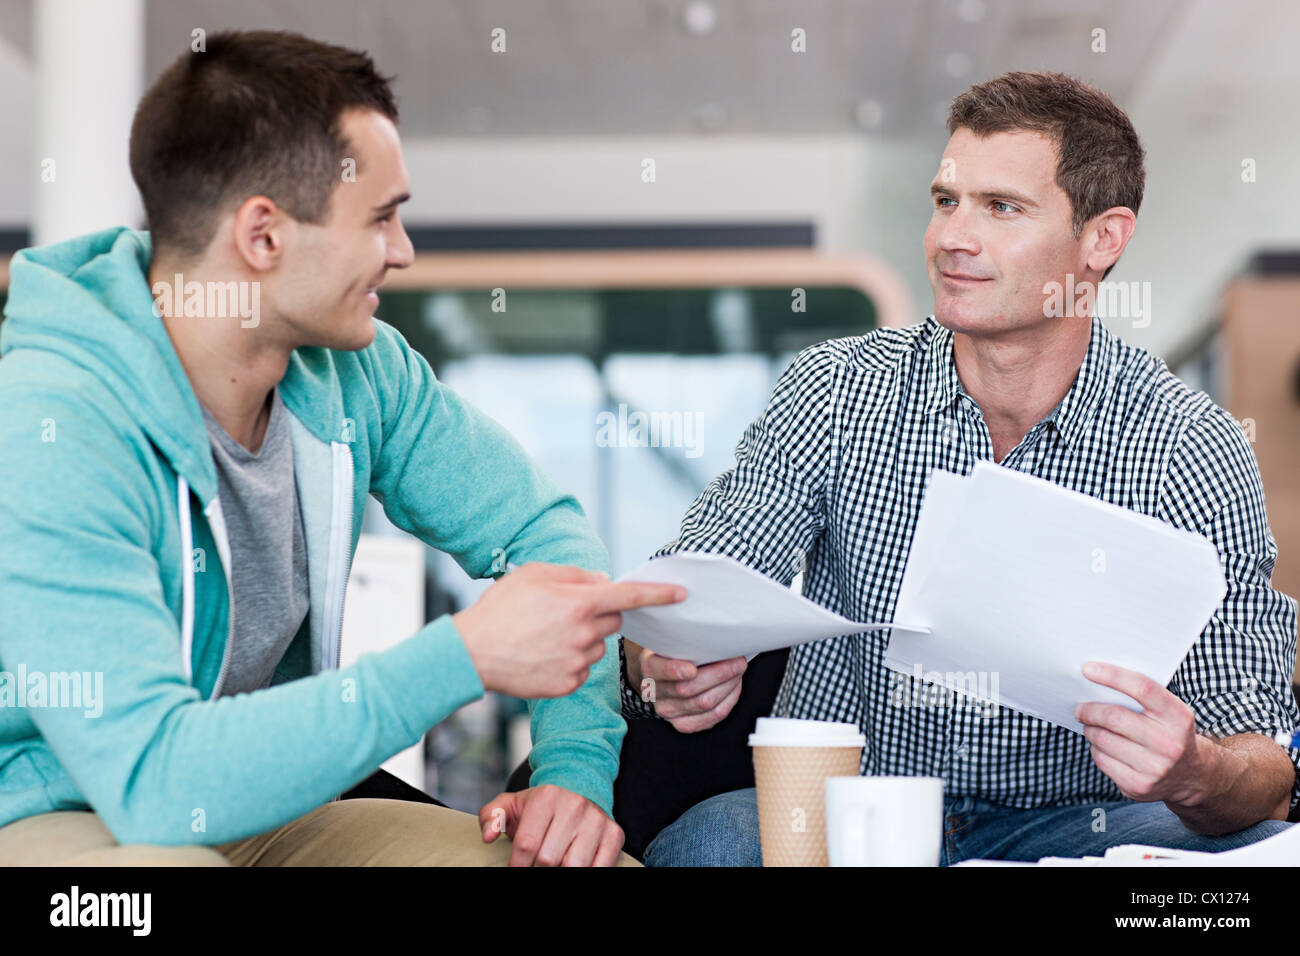 Man giving colleague document - Stock Image